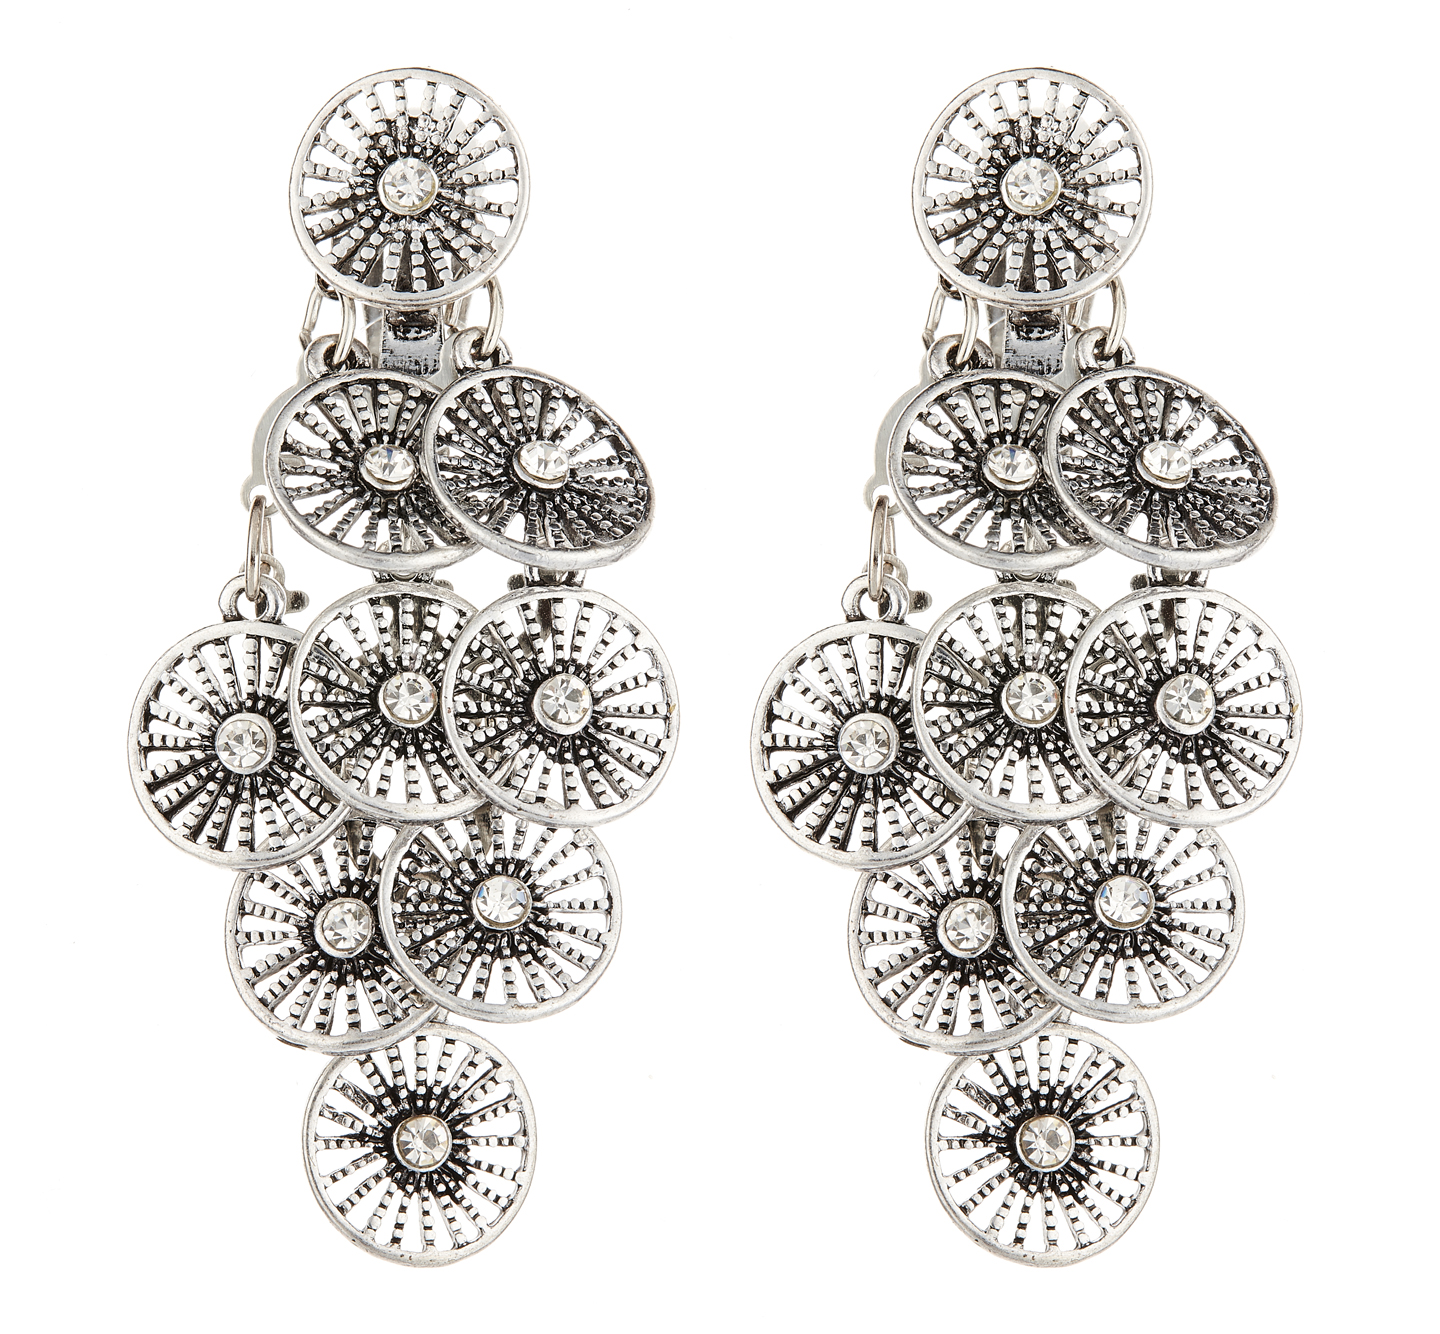 Clip On Earrings - Carissa - antique silver earring with clear crystals